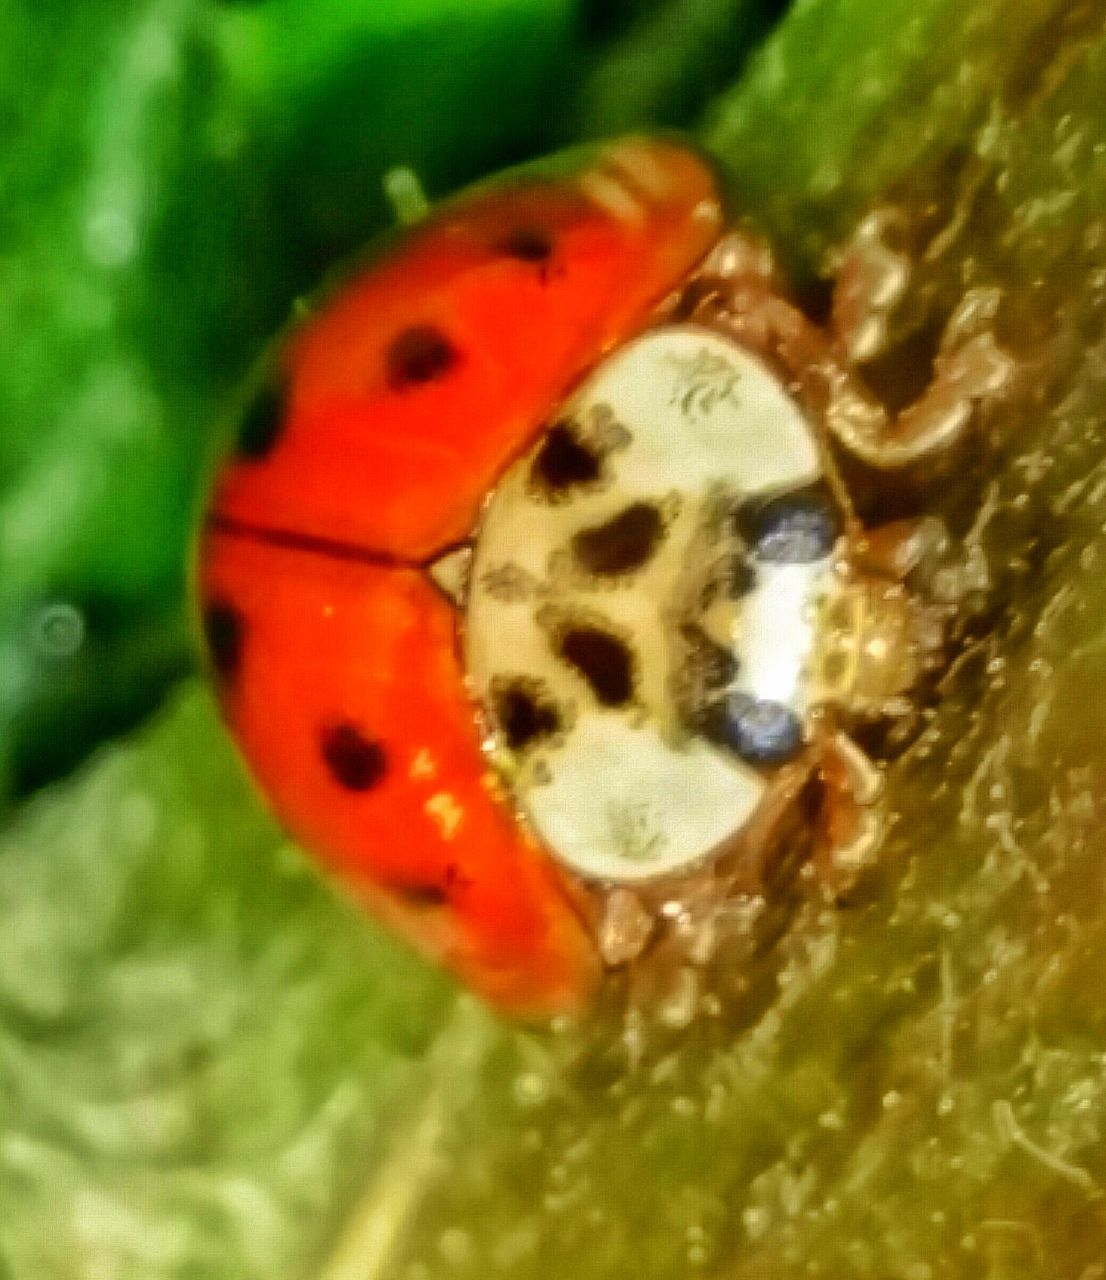 animal themes, ladybug, animals in the wild, insect, close-up, one animal, wildlife, tiny, no people, red, nature, animal markings, day, outdoors